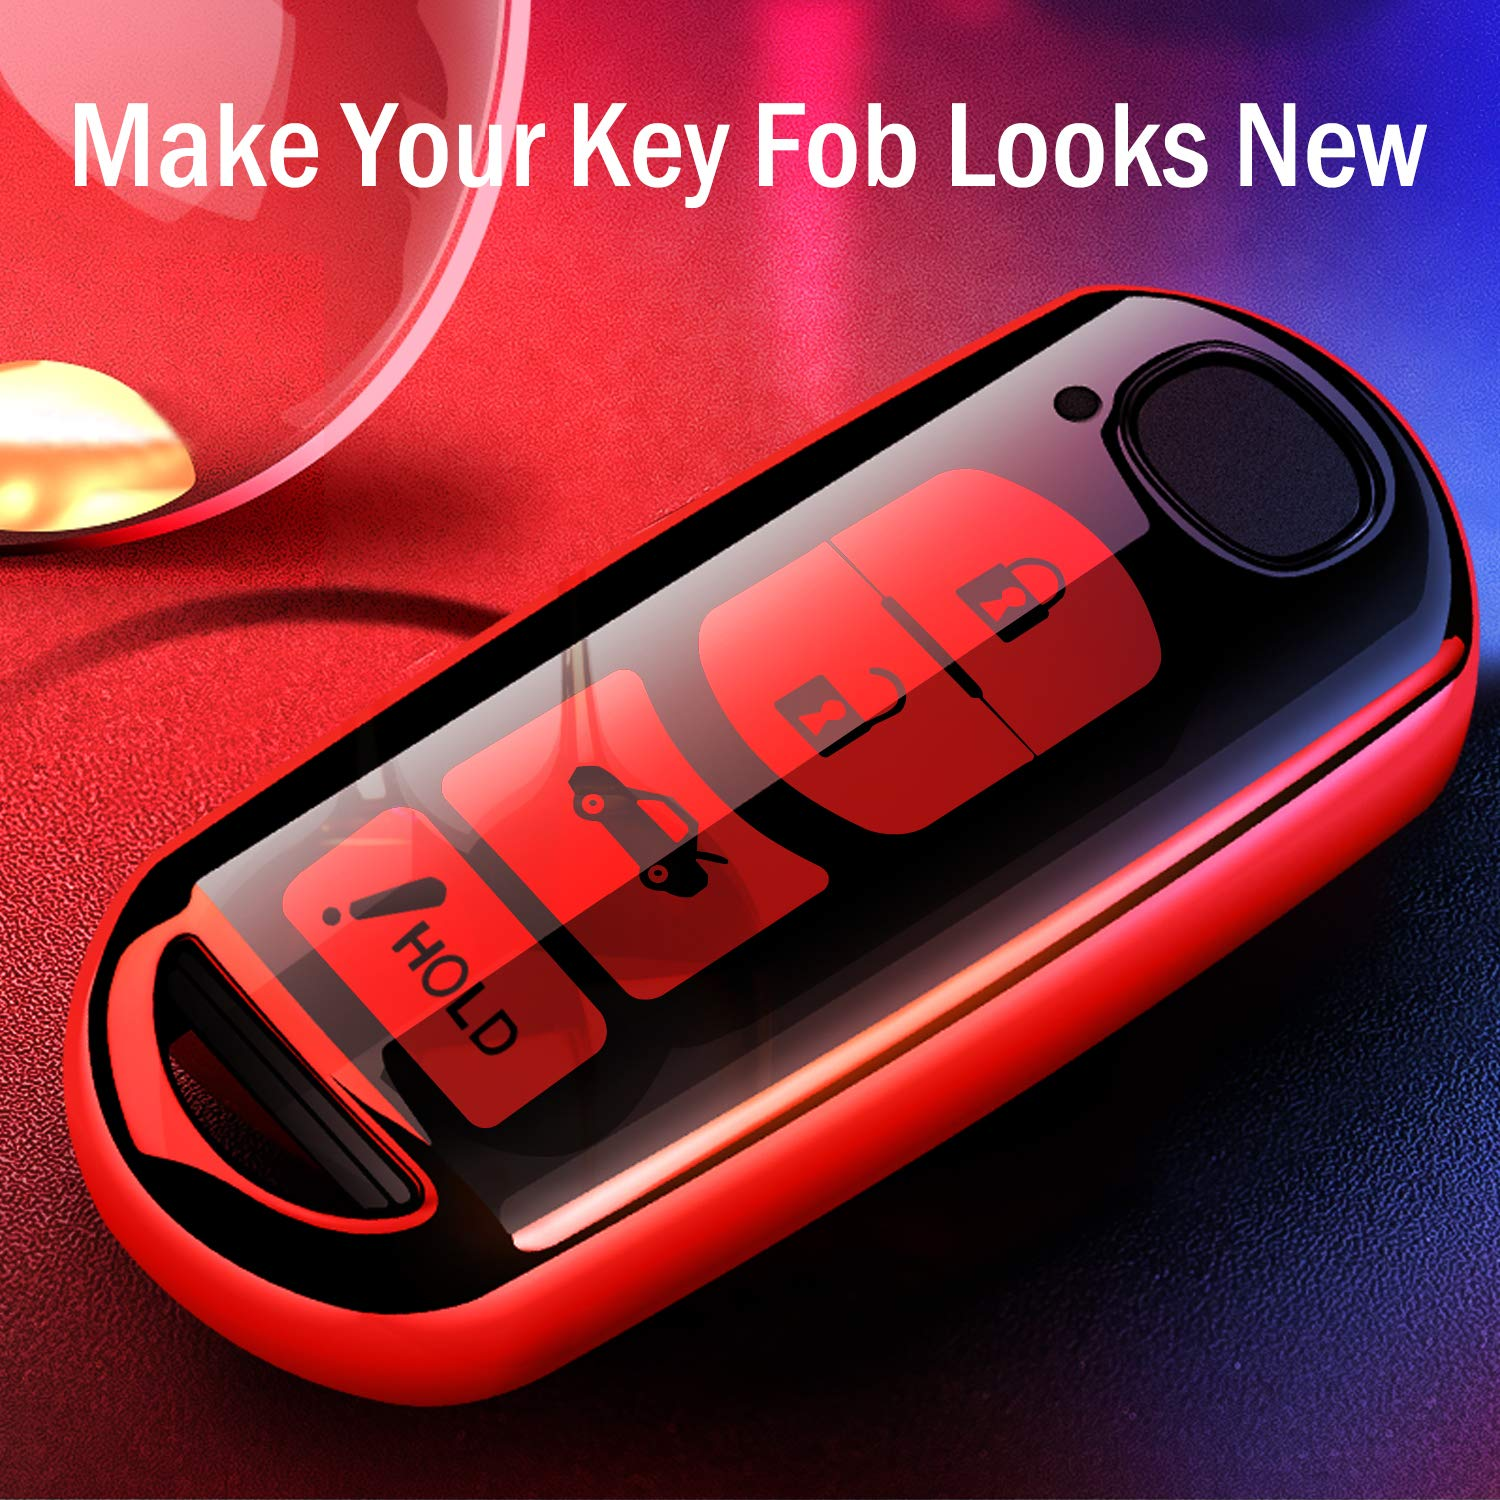 Key Fob Case for Mazda 3 6 8 Miata MX-5 CX-3 CX-5 CX-7 CX-9 4-Buttons Premium Soft TPU Full Cover Protection Smart Remote Keyless Key Fob Shell COMPONALL for Mazda Key Fob Cover Rose Gold